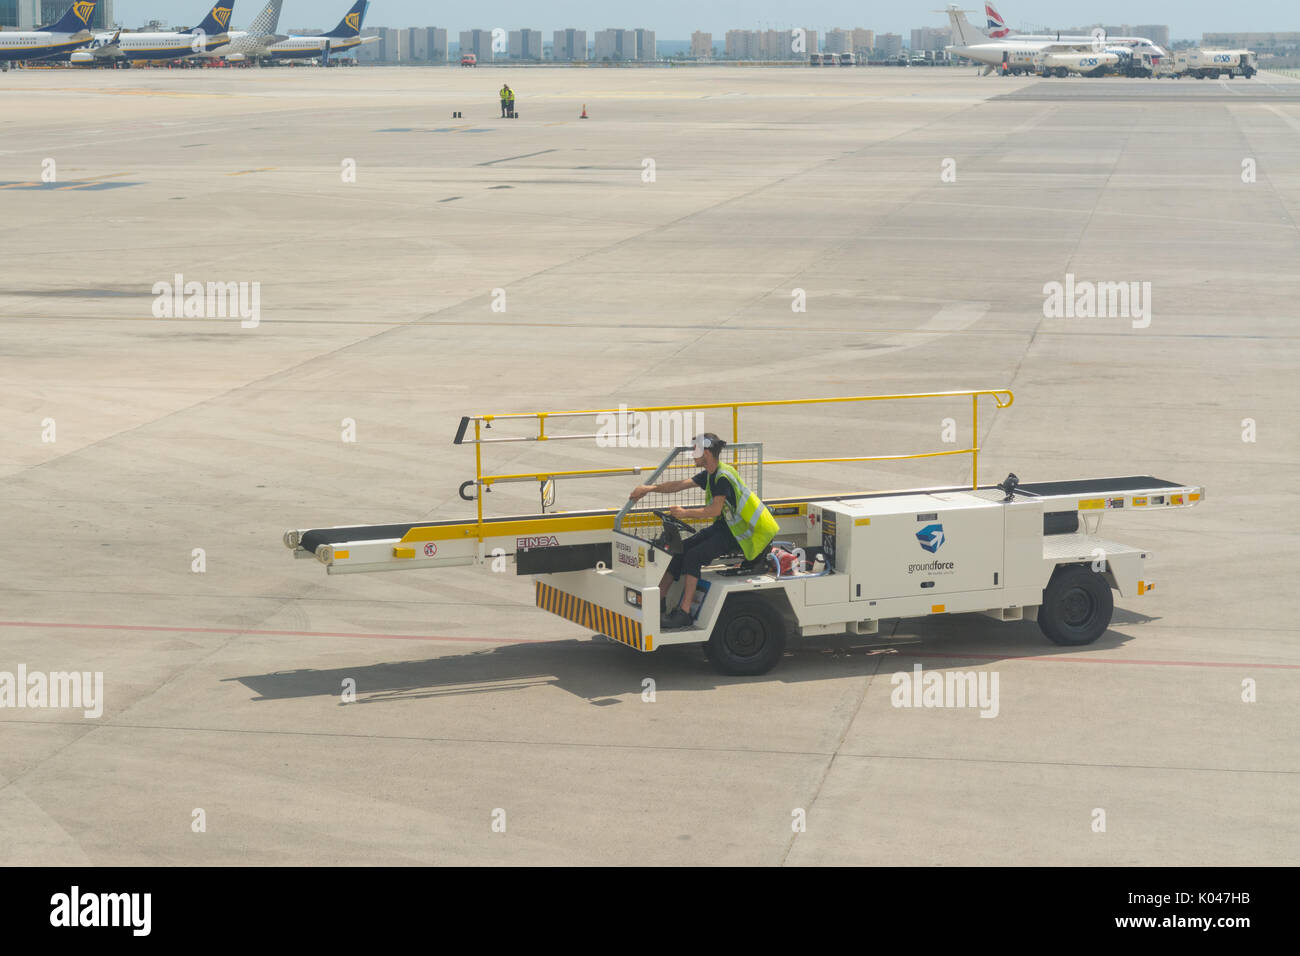 Groundforce handling services at Alicante Airport, Spain - Stock Image